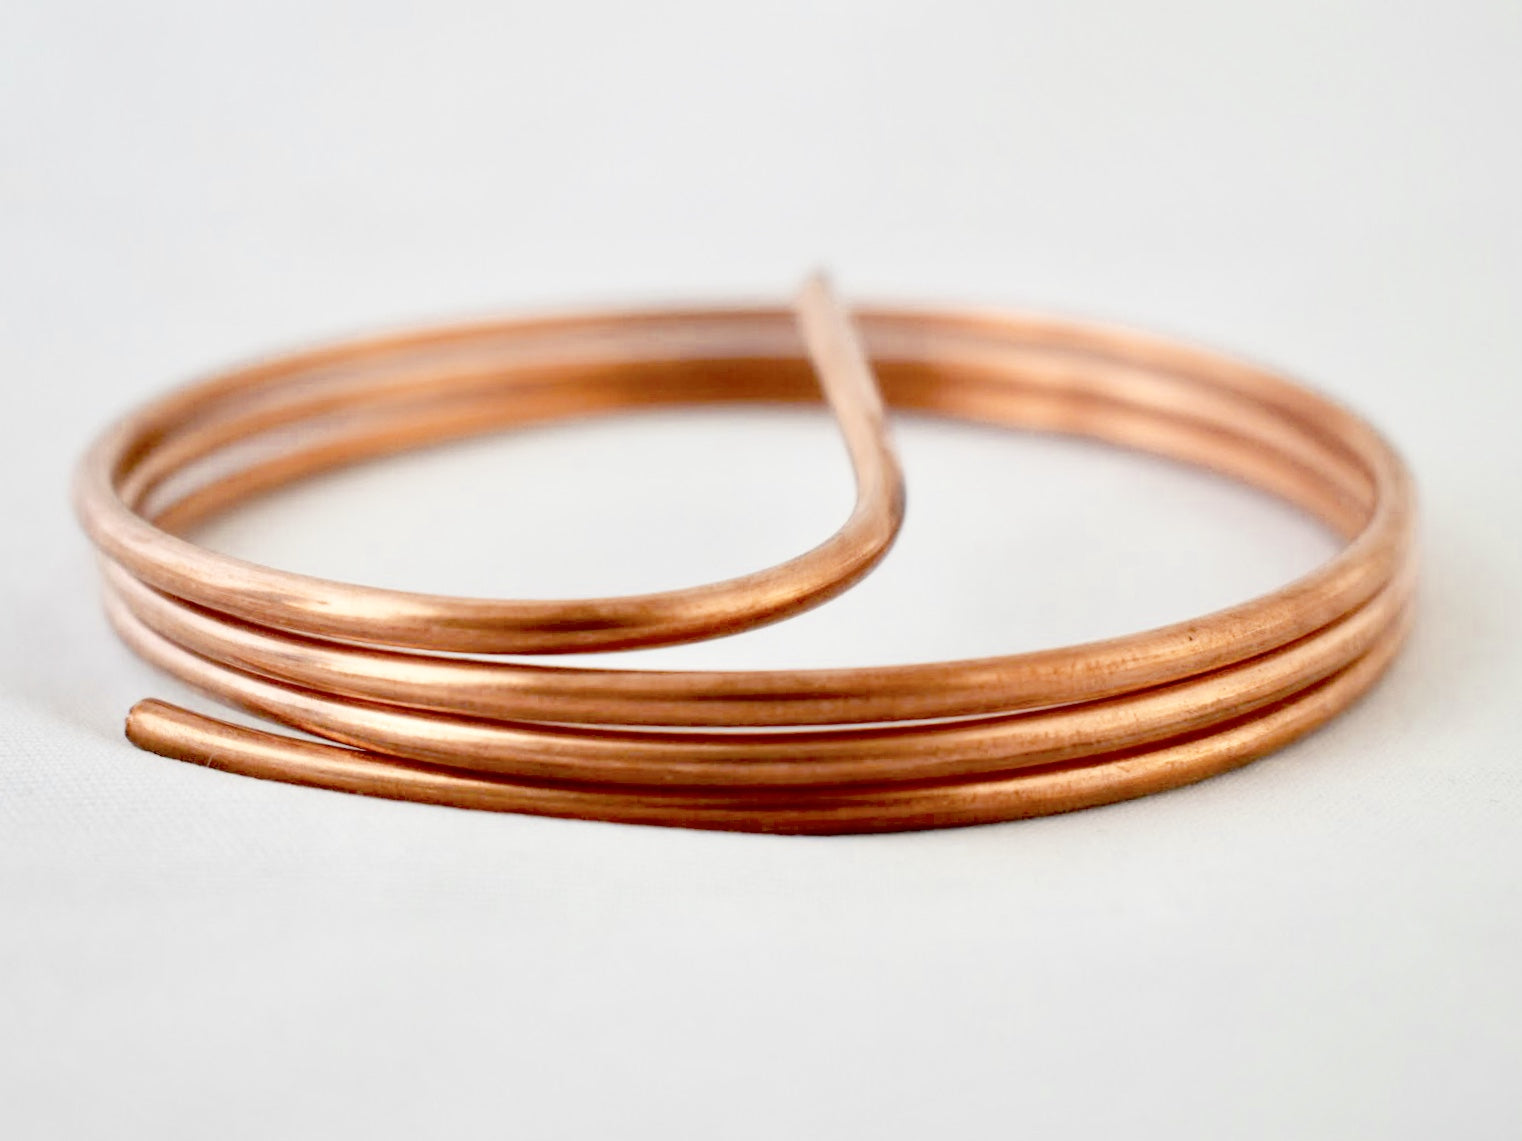 Copper Coil Anode Replacement | Cu Electroforming Supply | Kit Refill - Enchanted Leaves - Nature Jewelry - Unique Handmade Gifts